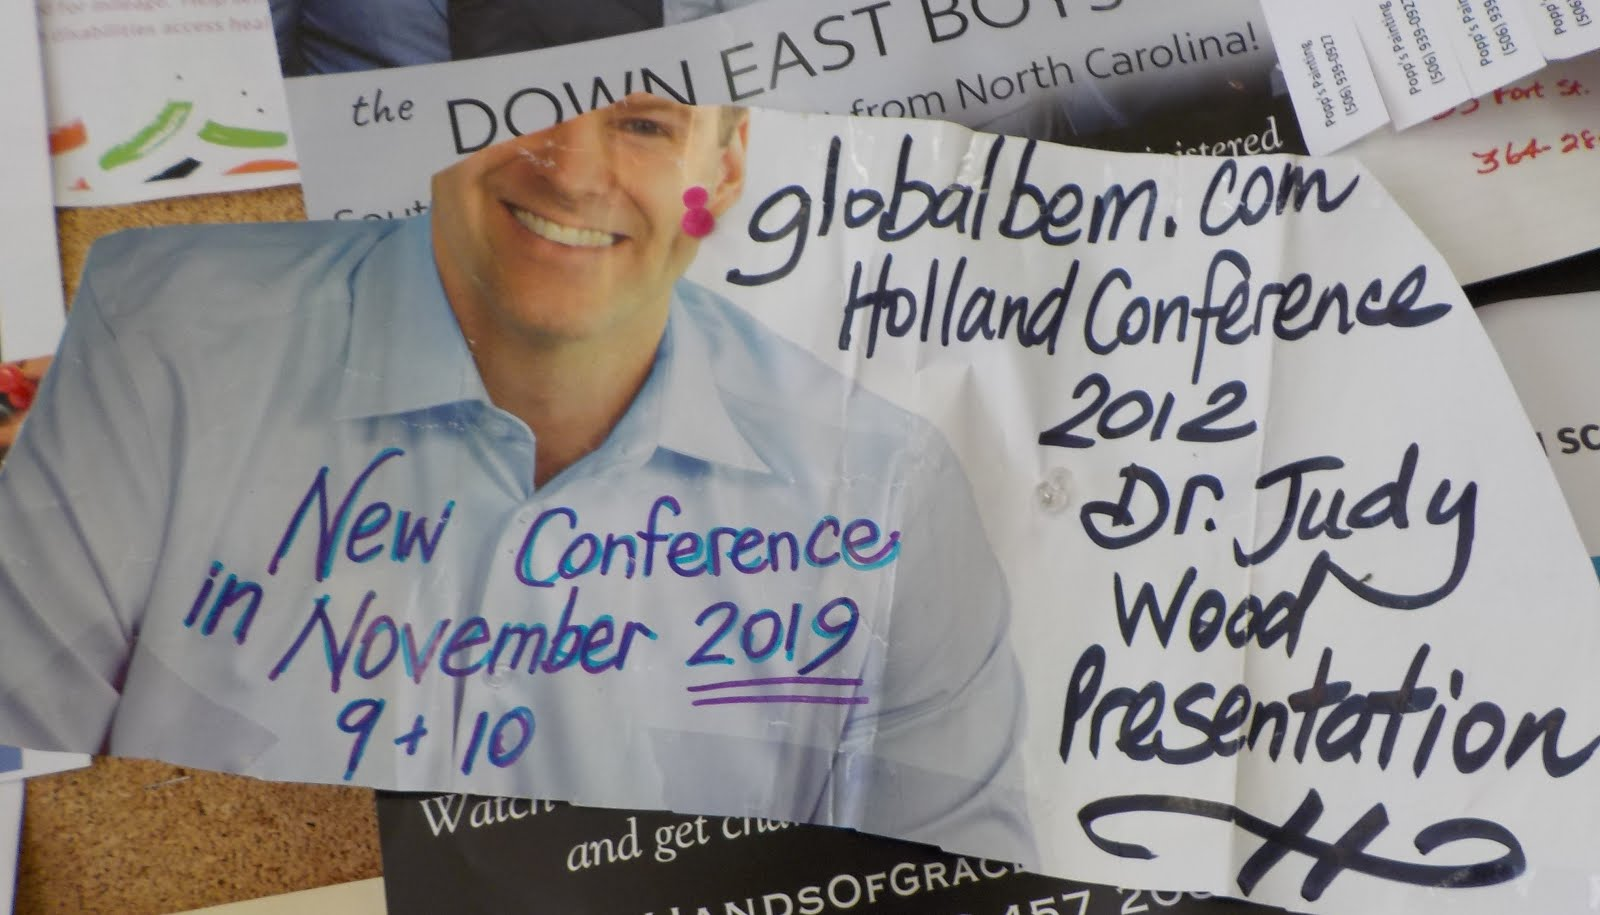 Global BEM - November 9 - 10, 2019 Conference - The Netherlands - click pic